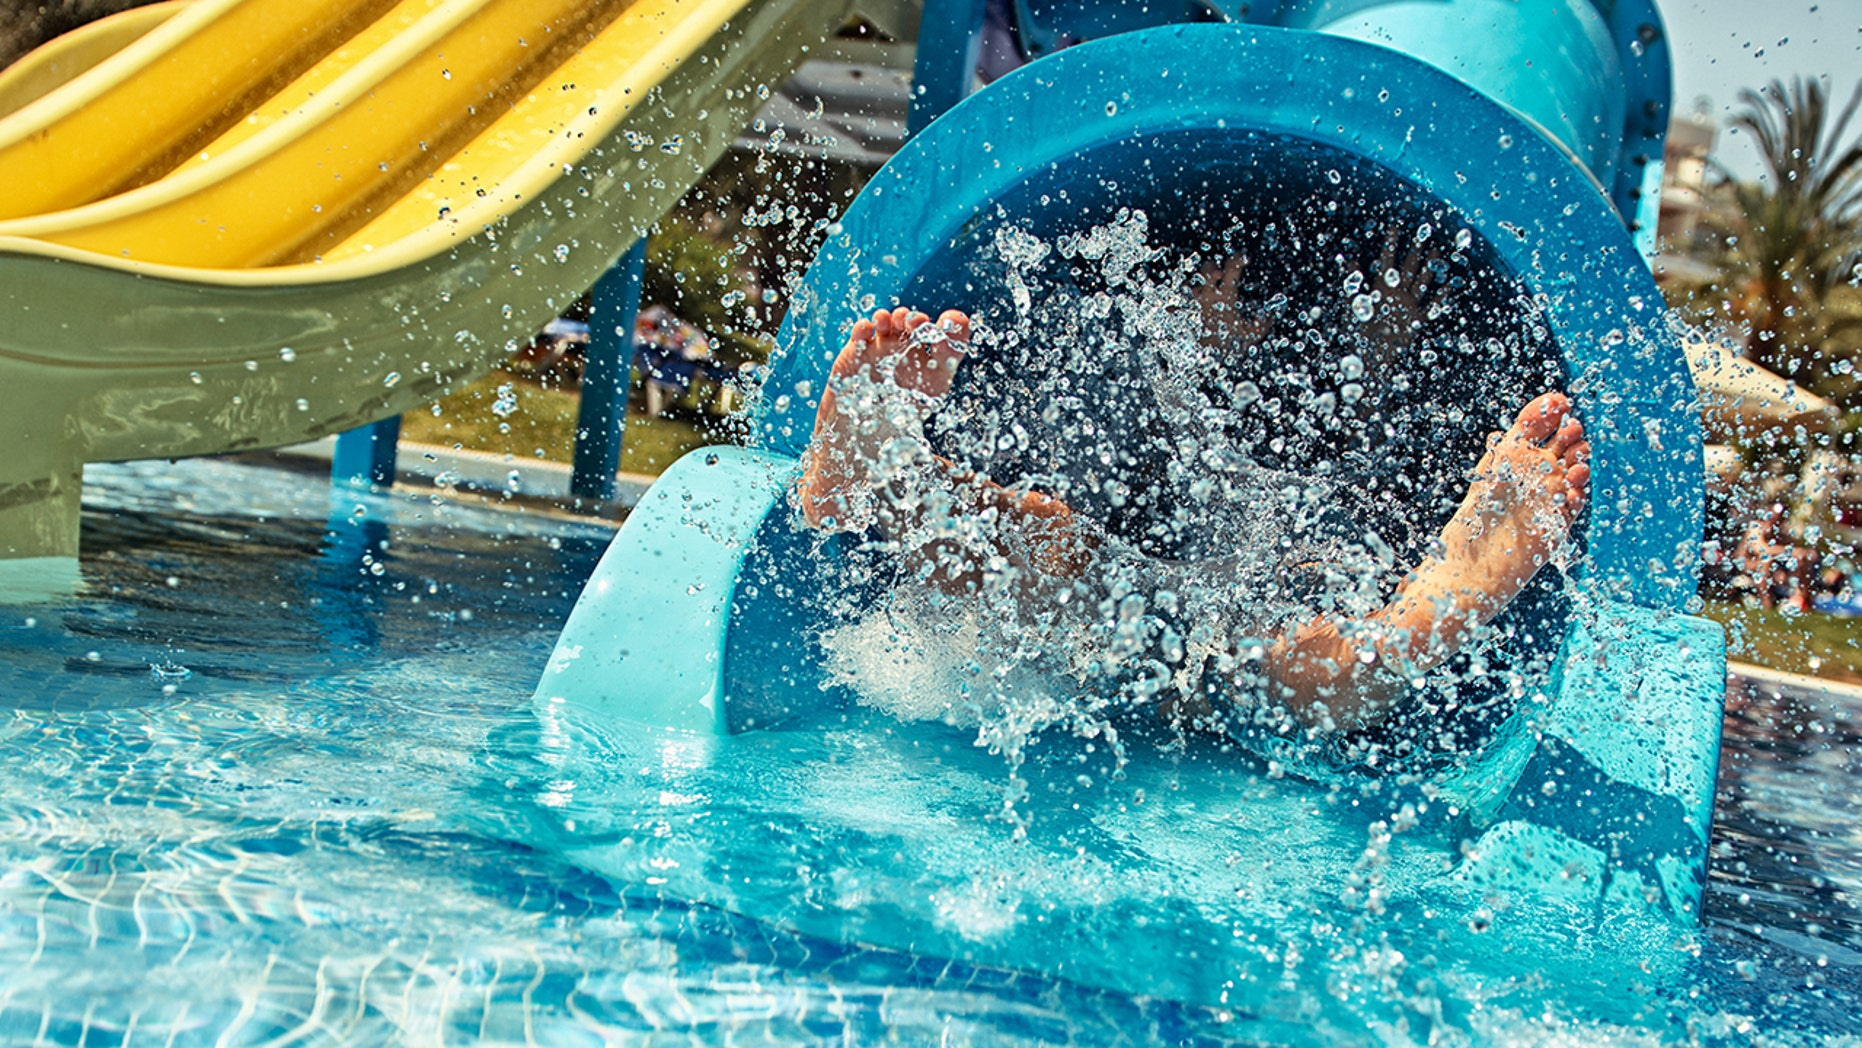 A 12-year-old girl was banned from a water slide because of her insulin pump, her mother claims